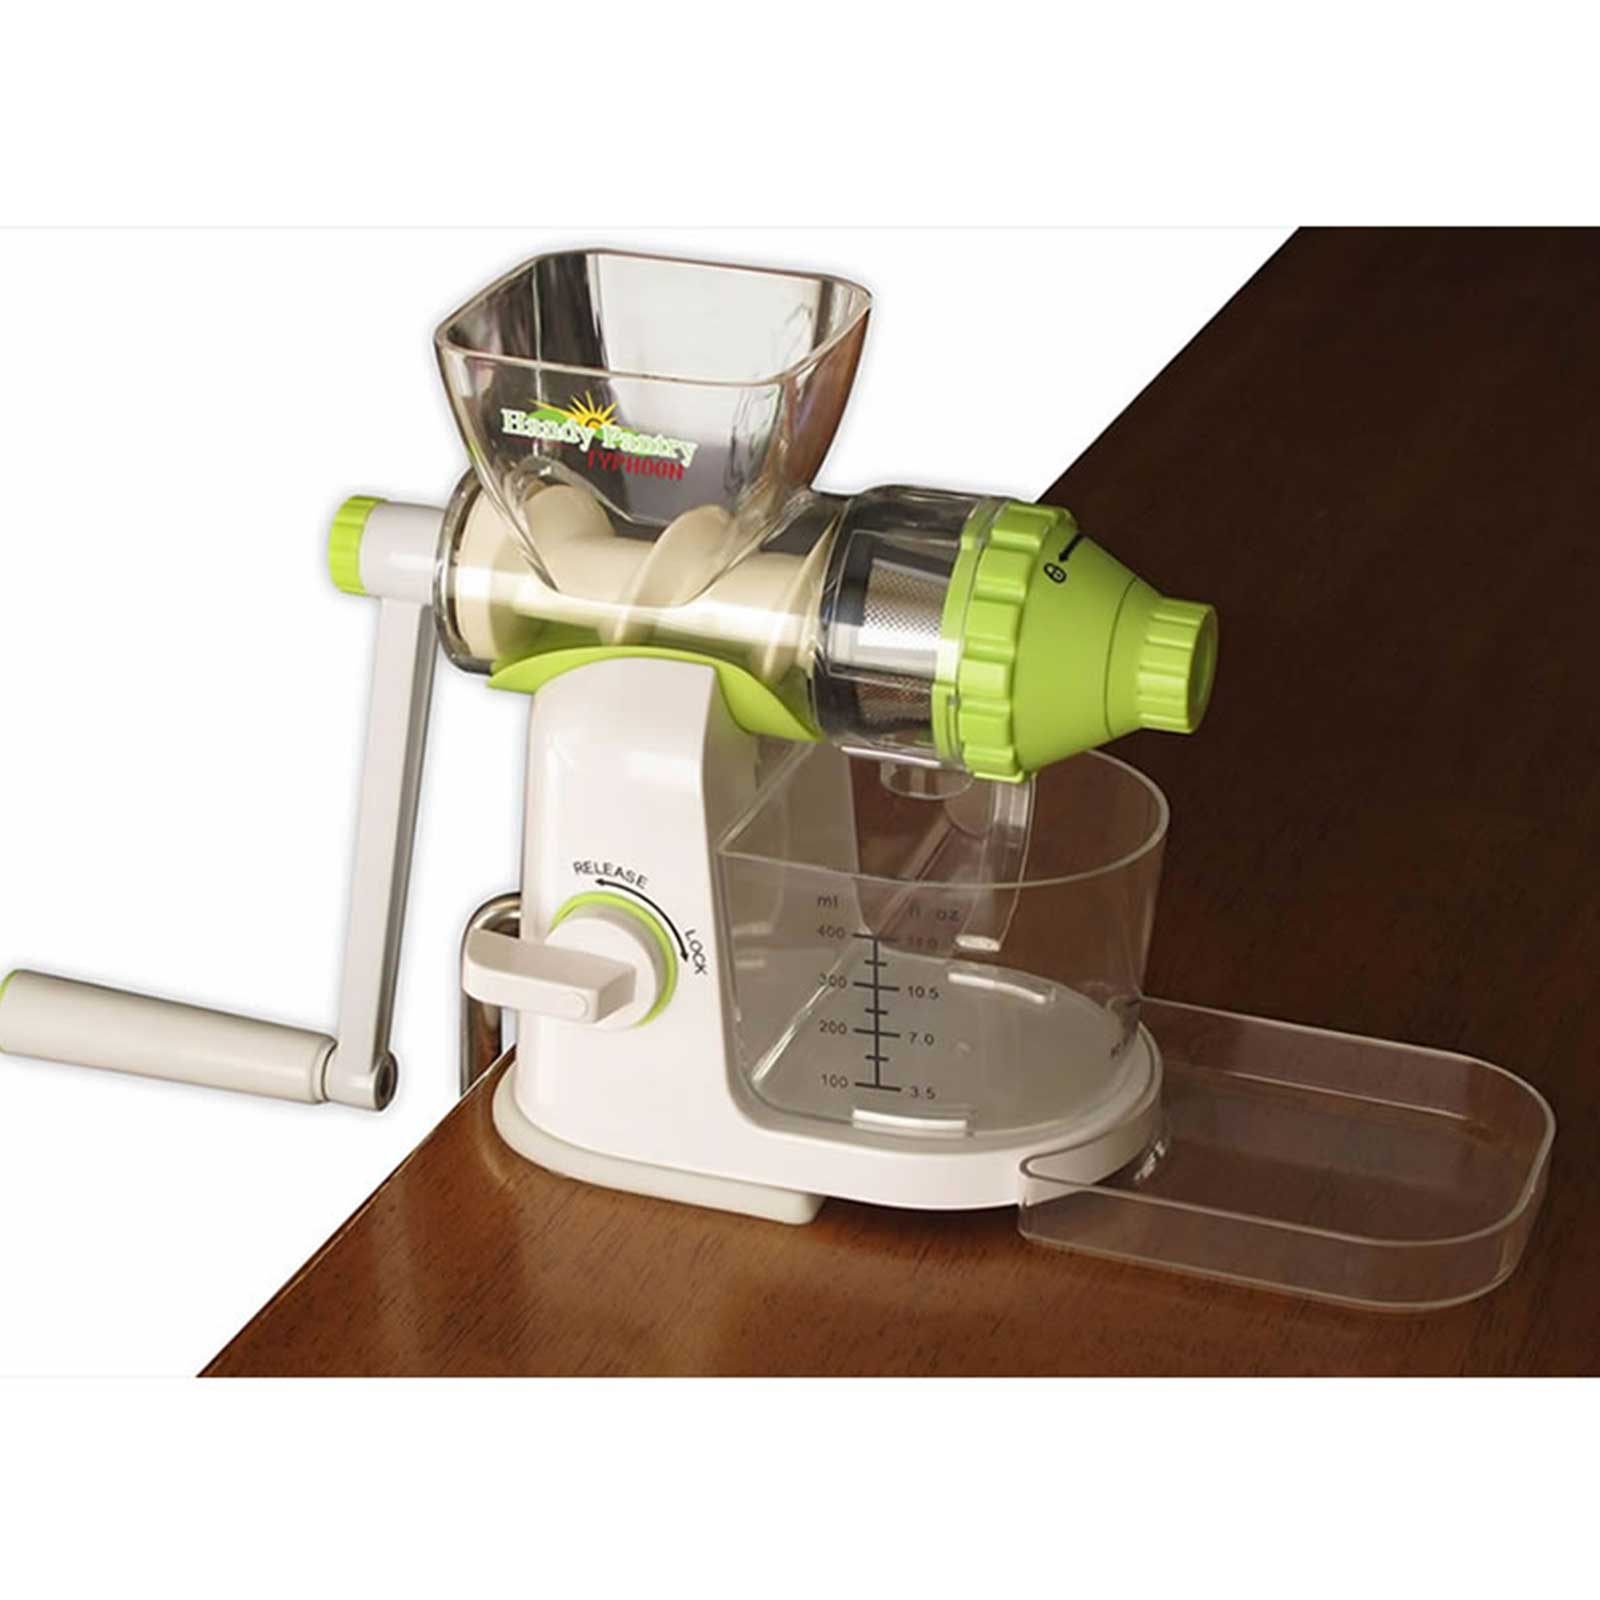 Typhoon Manual Wheatgrass Juicer - Hand Crank Wheat Grass, Fruit & Vegetable Juice Extractor